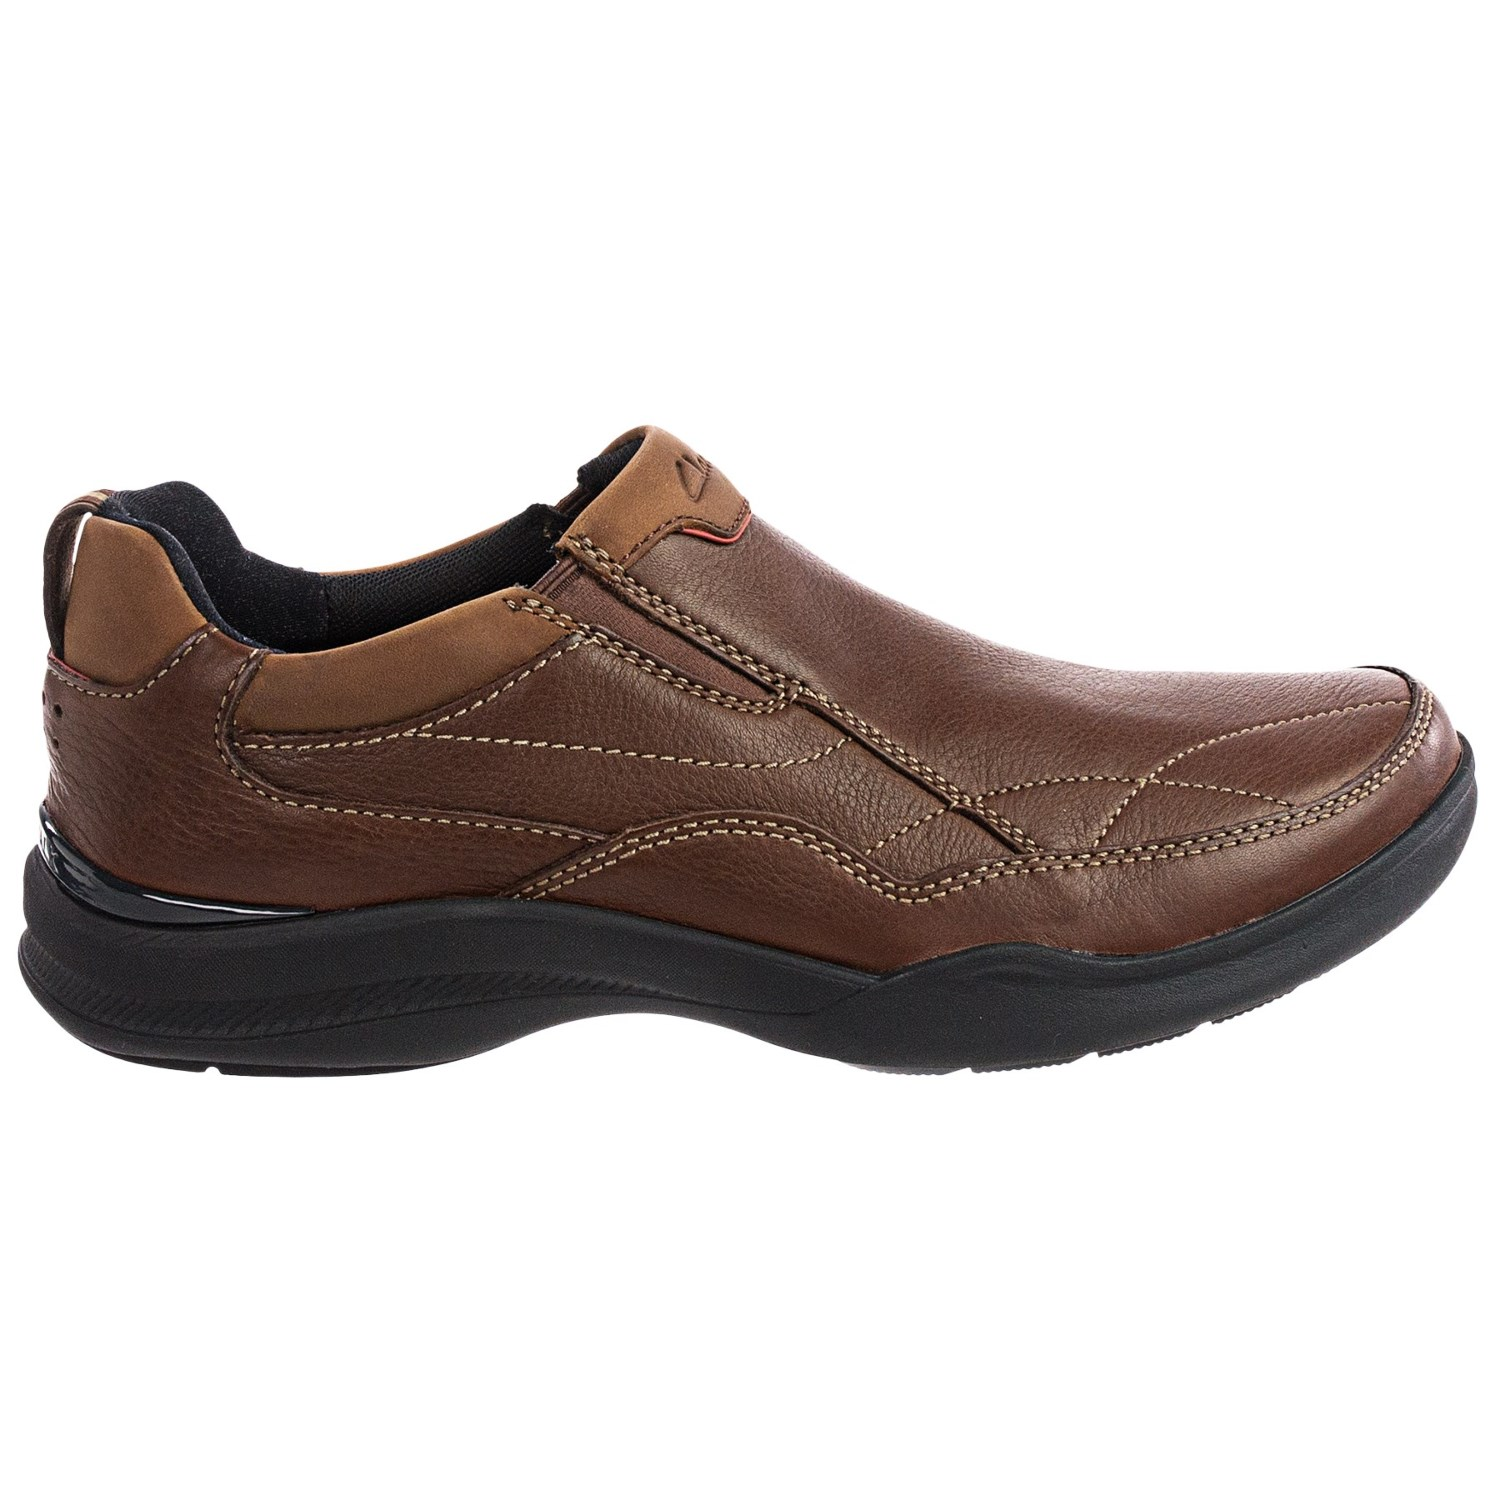 Mens Slip On Walking Shoes Images